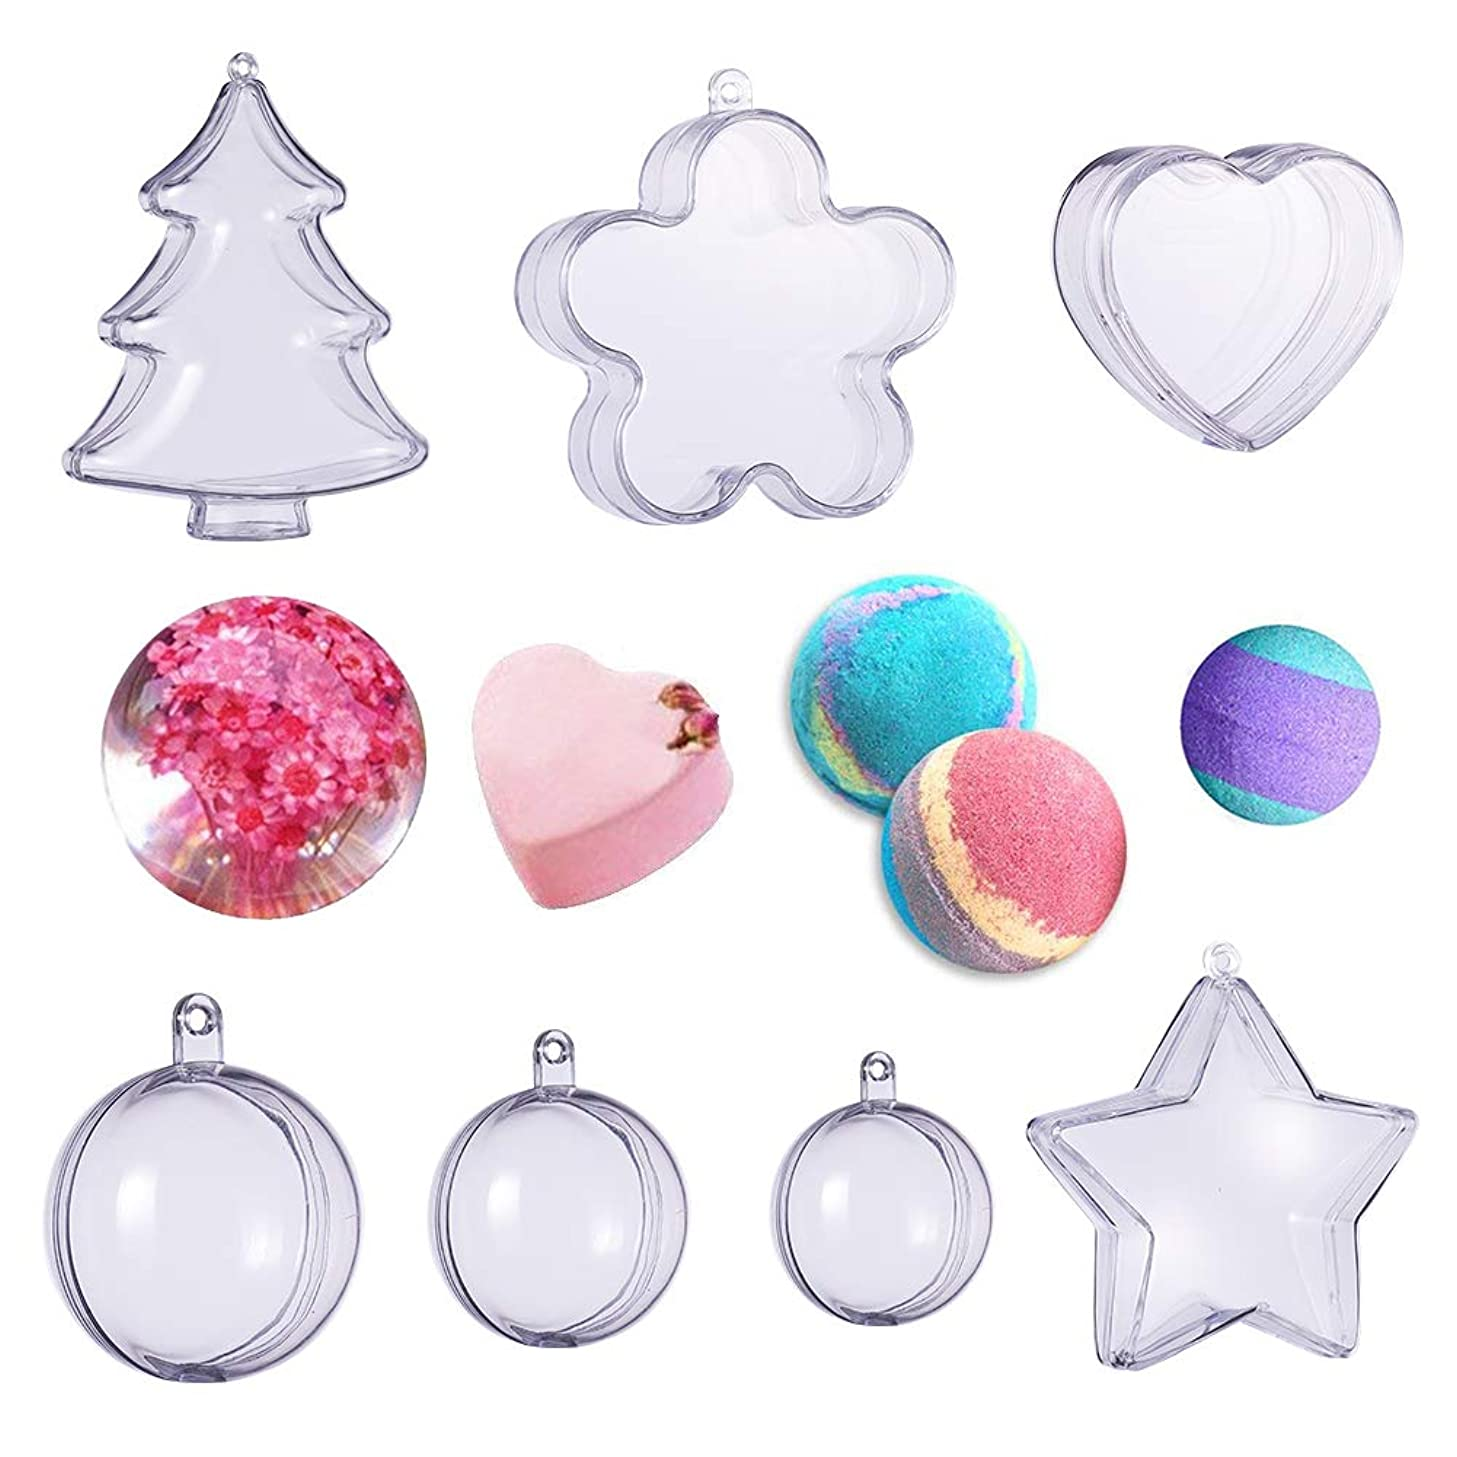 BENECREAT 14 Sets Bath Bomb Molds, DIY Bath Bomb 7 Size with 14 Set Clear Plastic Christmas Ball Ornaments for Party Decorations (Christmas Tree & Flower & Heart & Star & 3 Size Round)